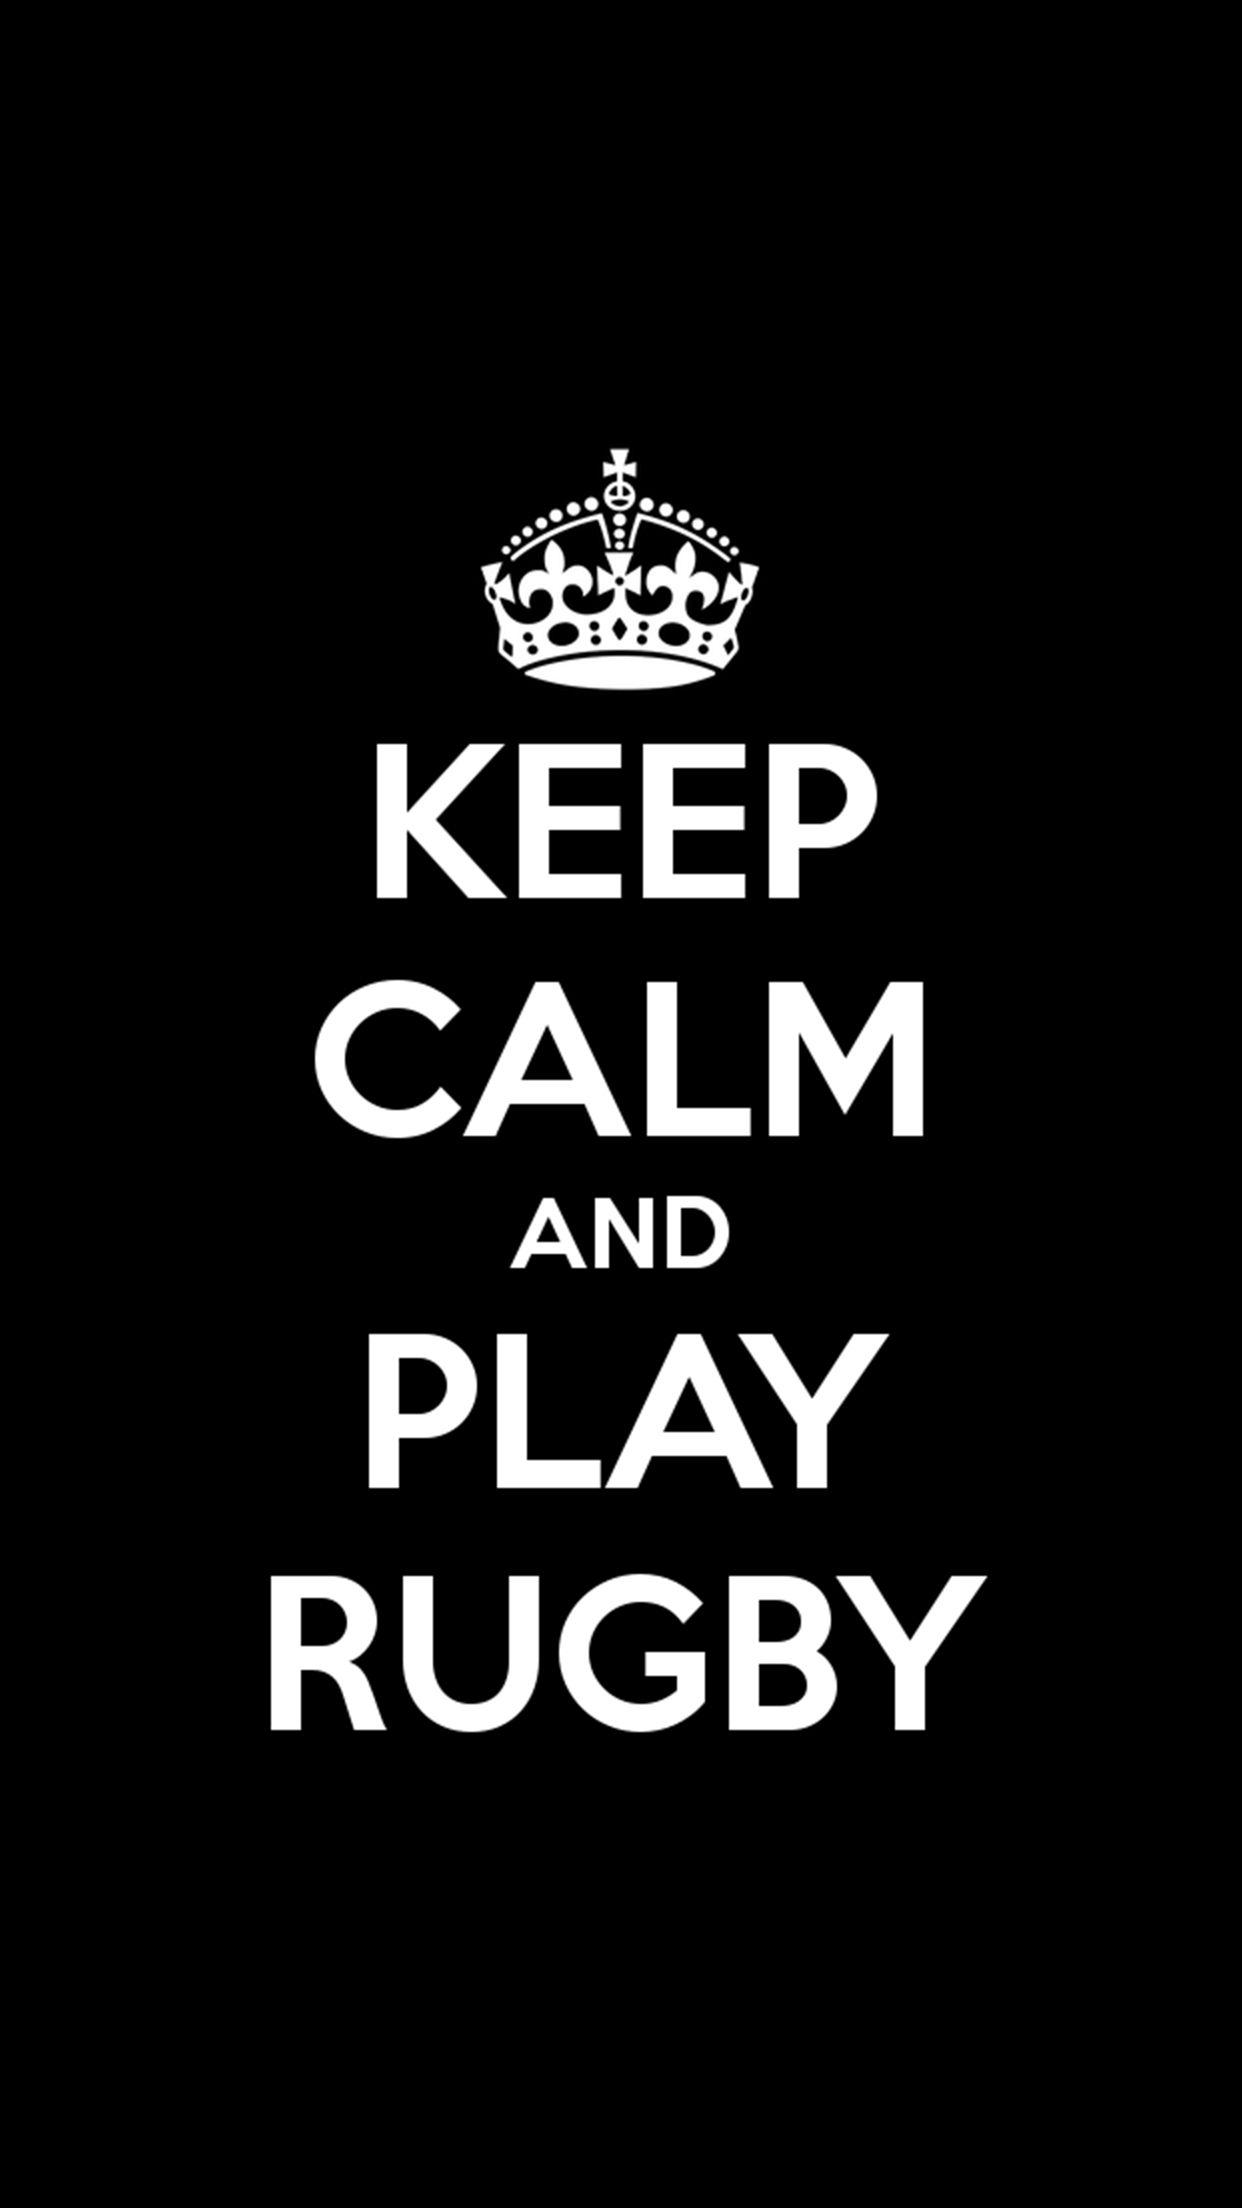 All Black Rugby Wallpapers Wallpaper Cave